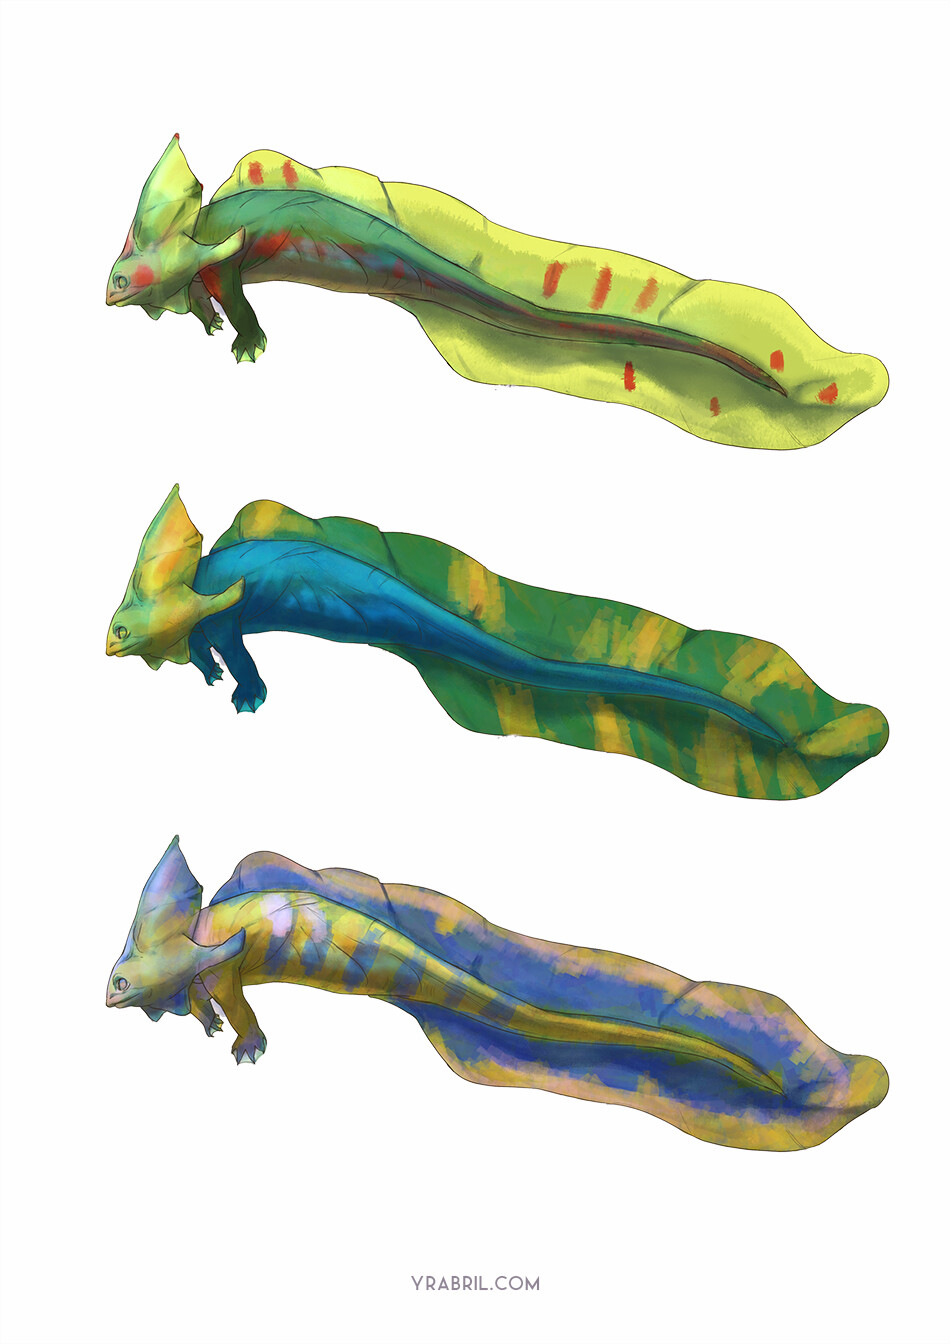 Creature Design - Color Variations